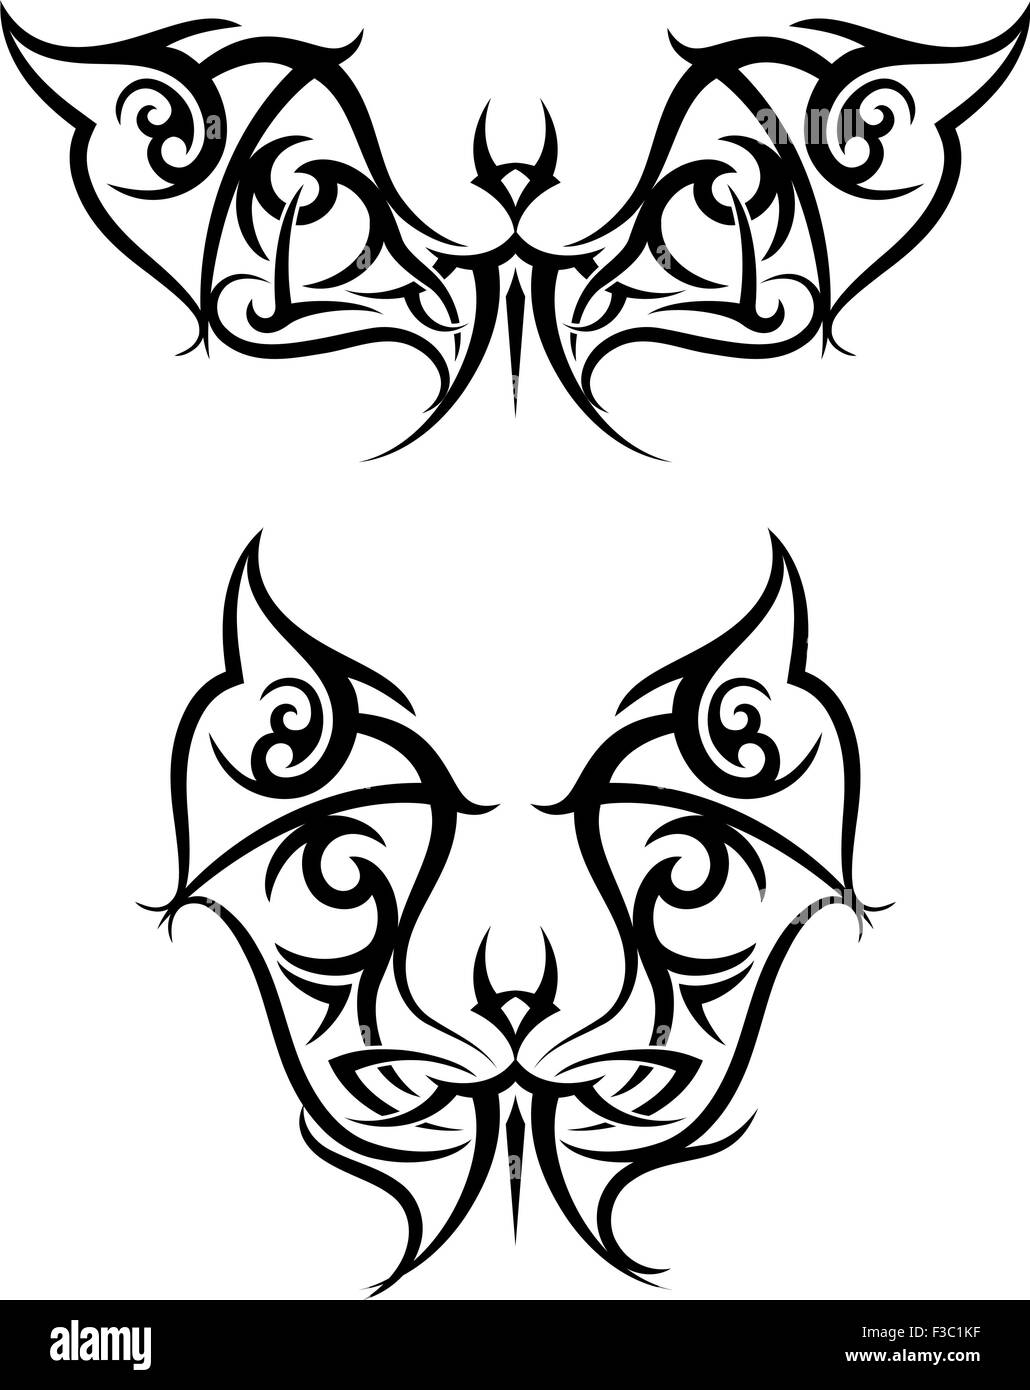 Henna Adornment Stock Vector Images Alamy